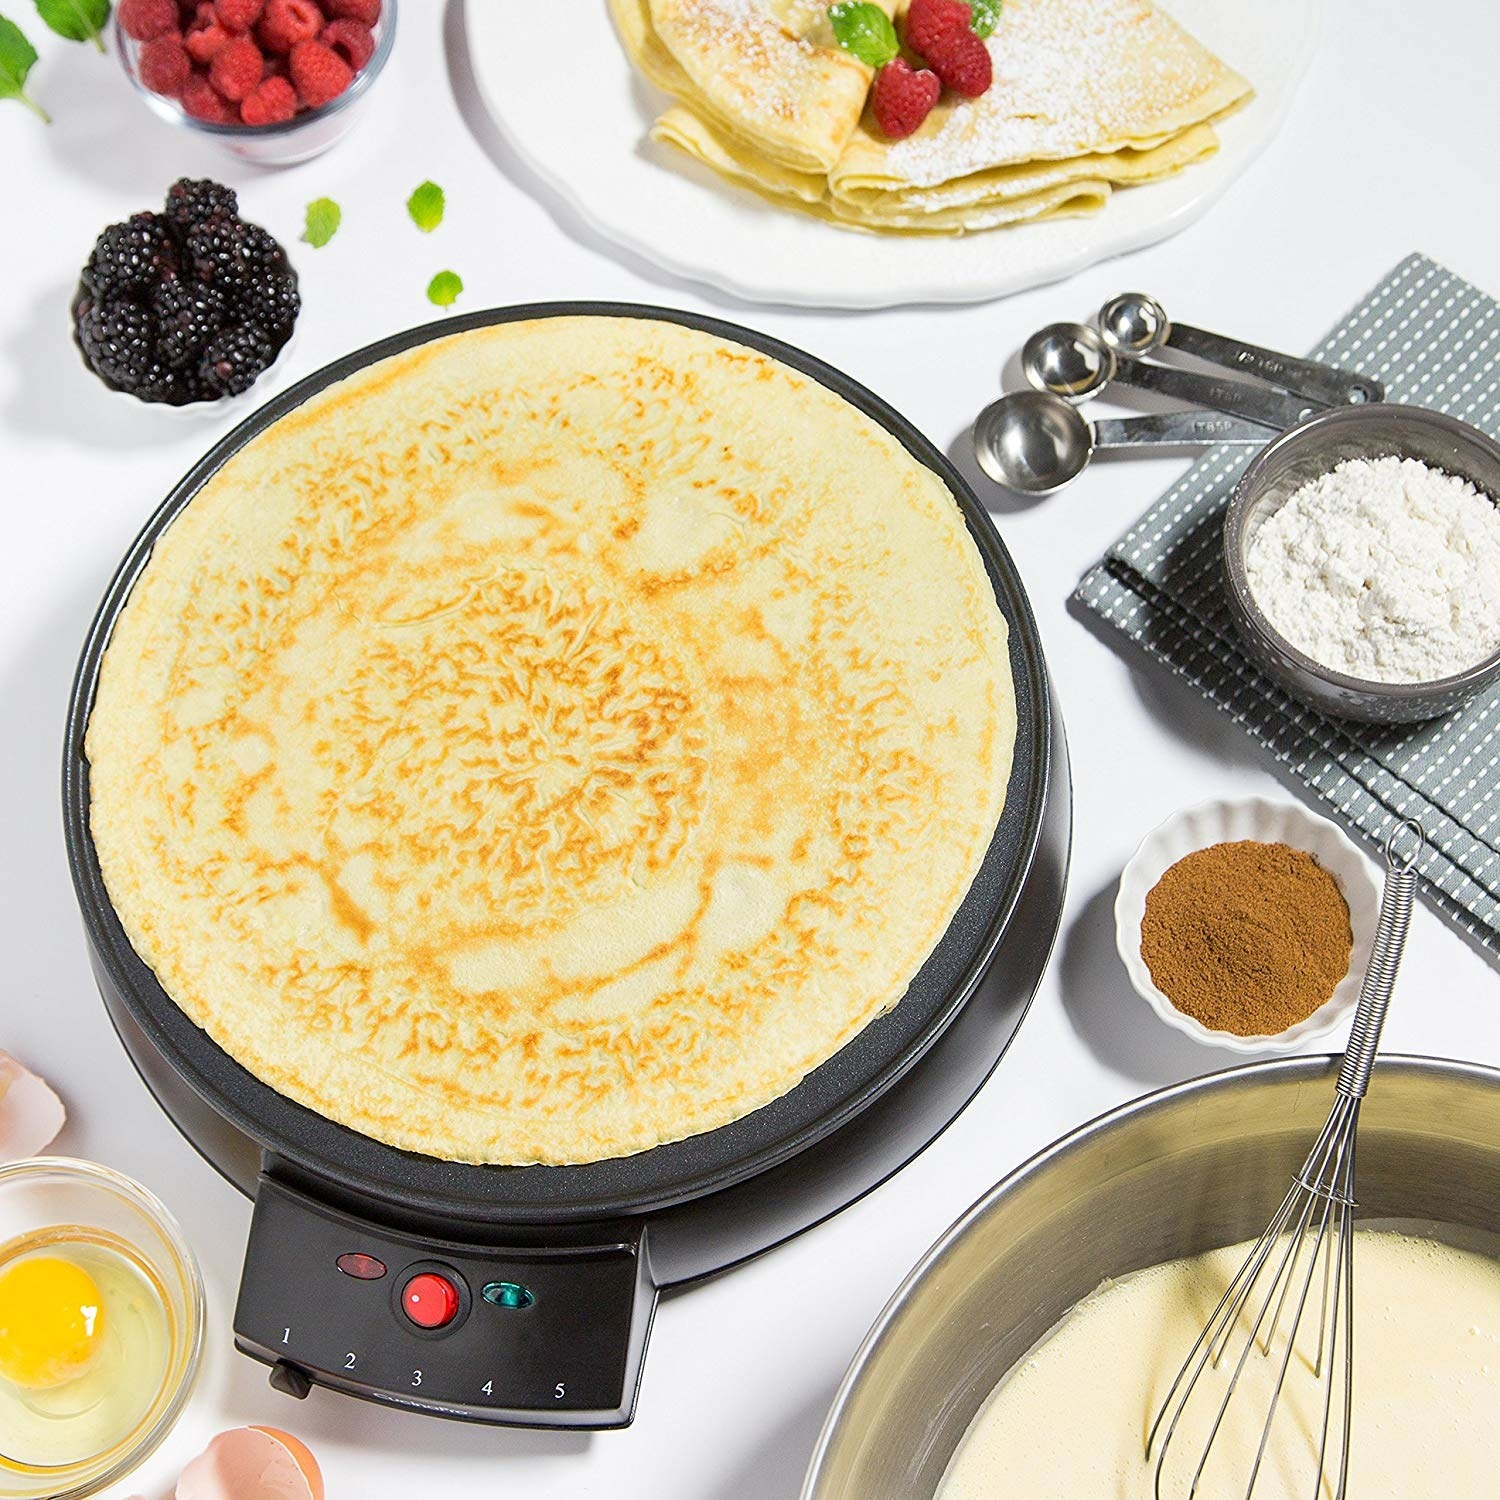 A crepe cooking on the crepe maker